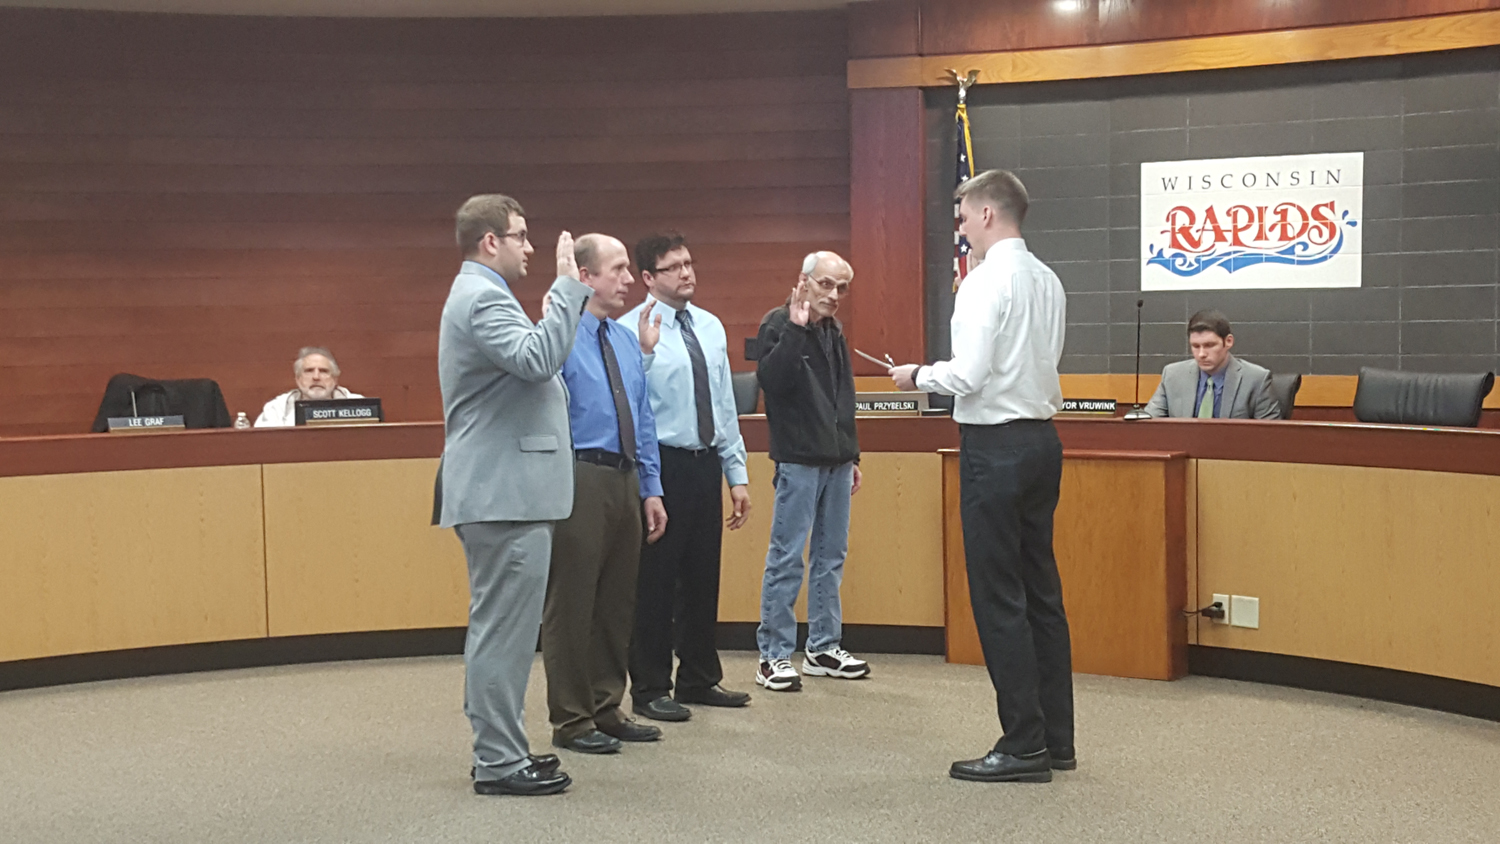 From left to right: Jake Cattanach, Shane Blaser, Lee Graf, and Tom Rayome -- sworn in by city clerk Paul Przybelski. (City Times Photo)